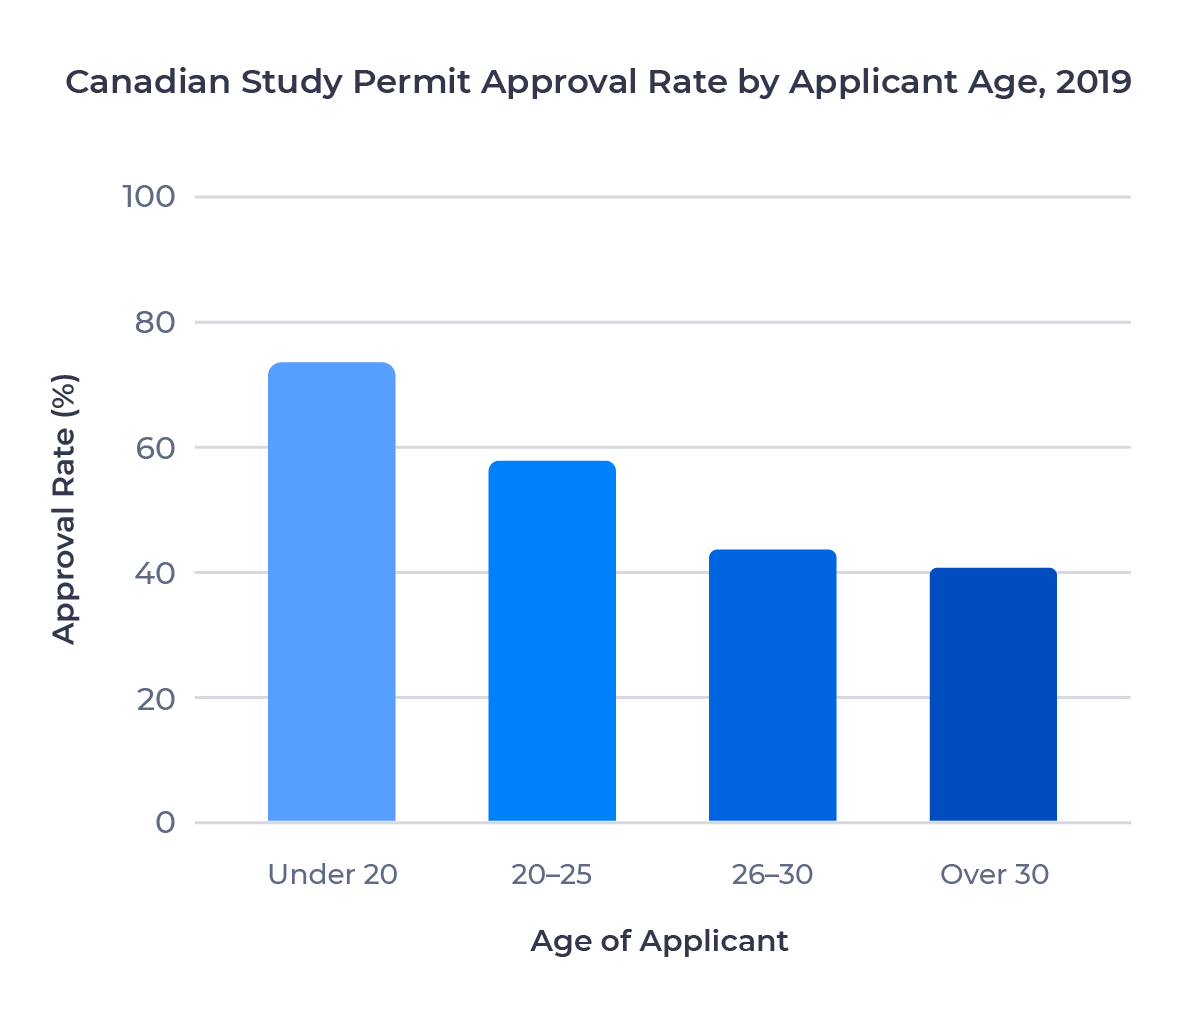 Bar chart showing Canadian study permit approval rates by applicant age in 2019. Examined in detail below.